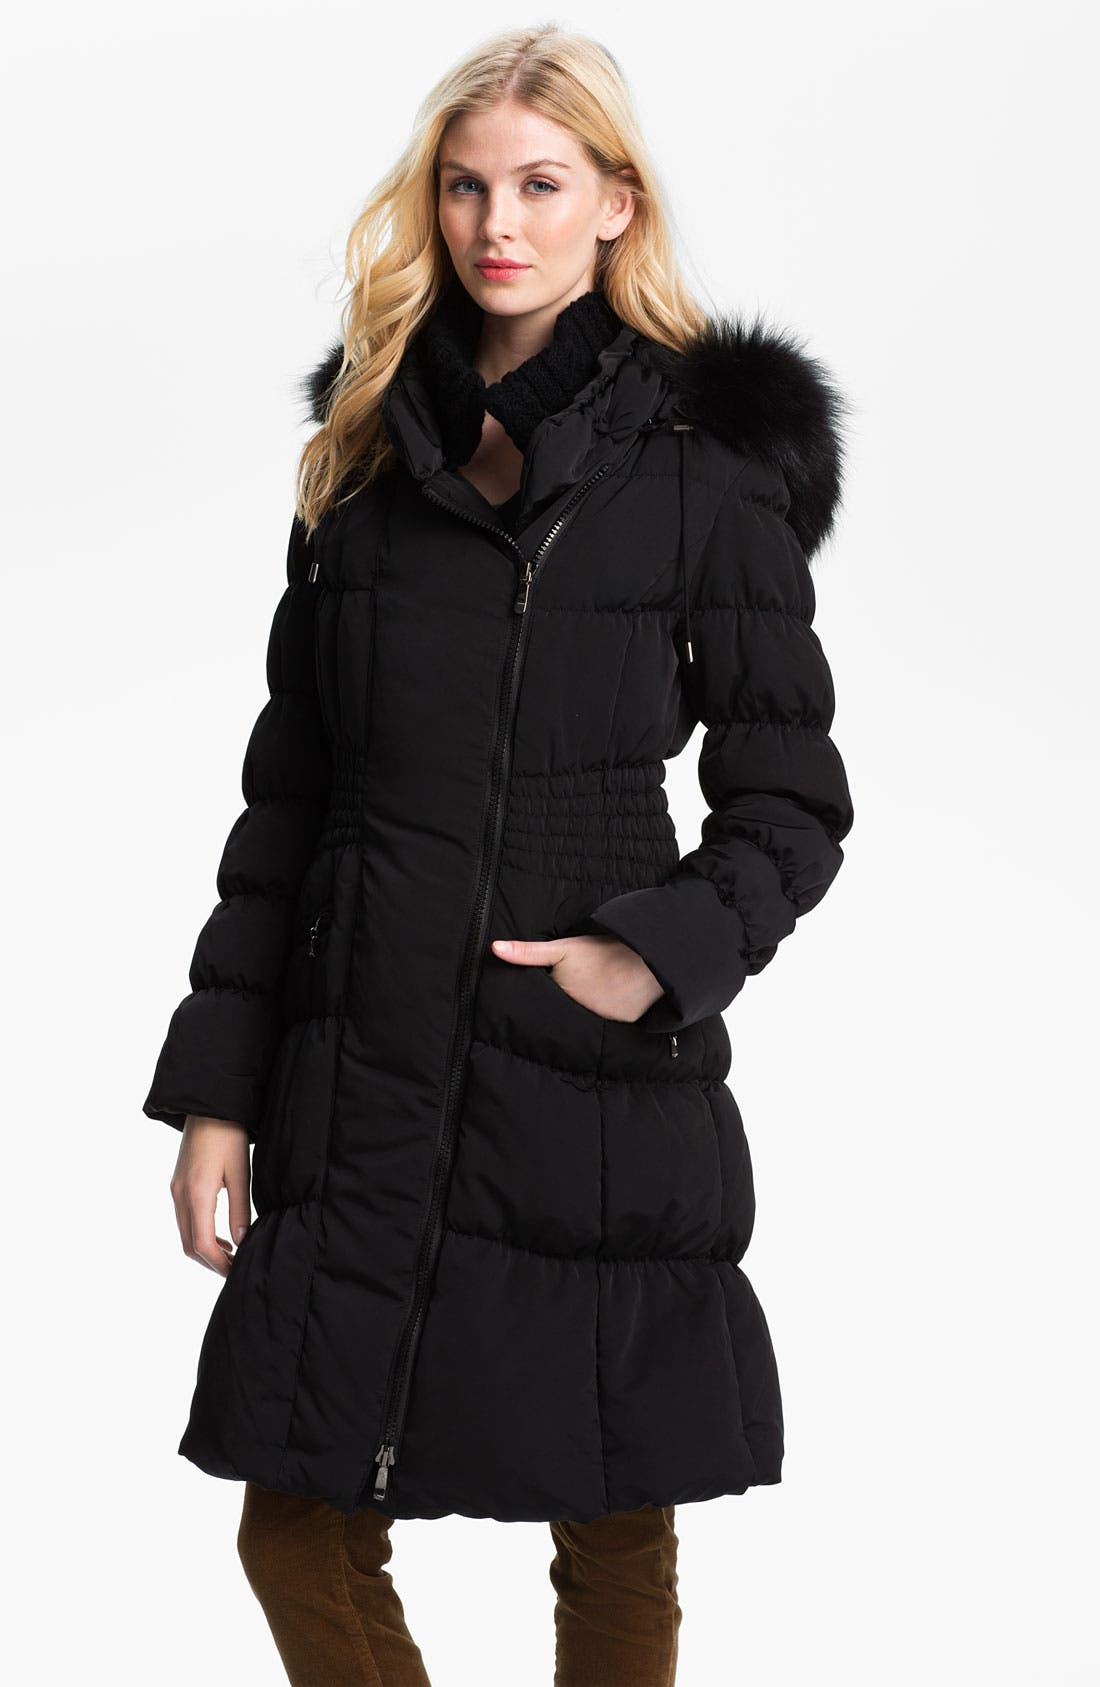 Alternate Image 1 Selected - 1 Madison Ruched Coat with Genuine Fox Fur